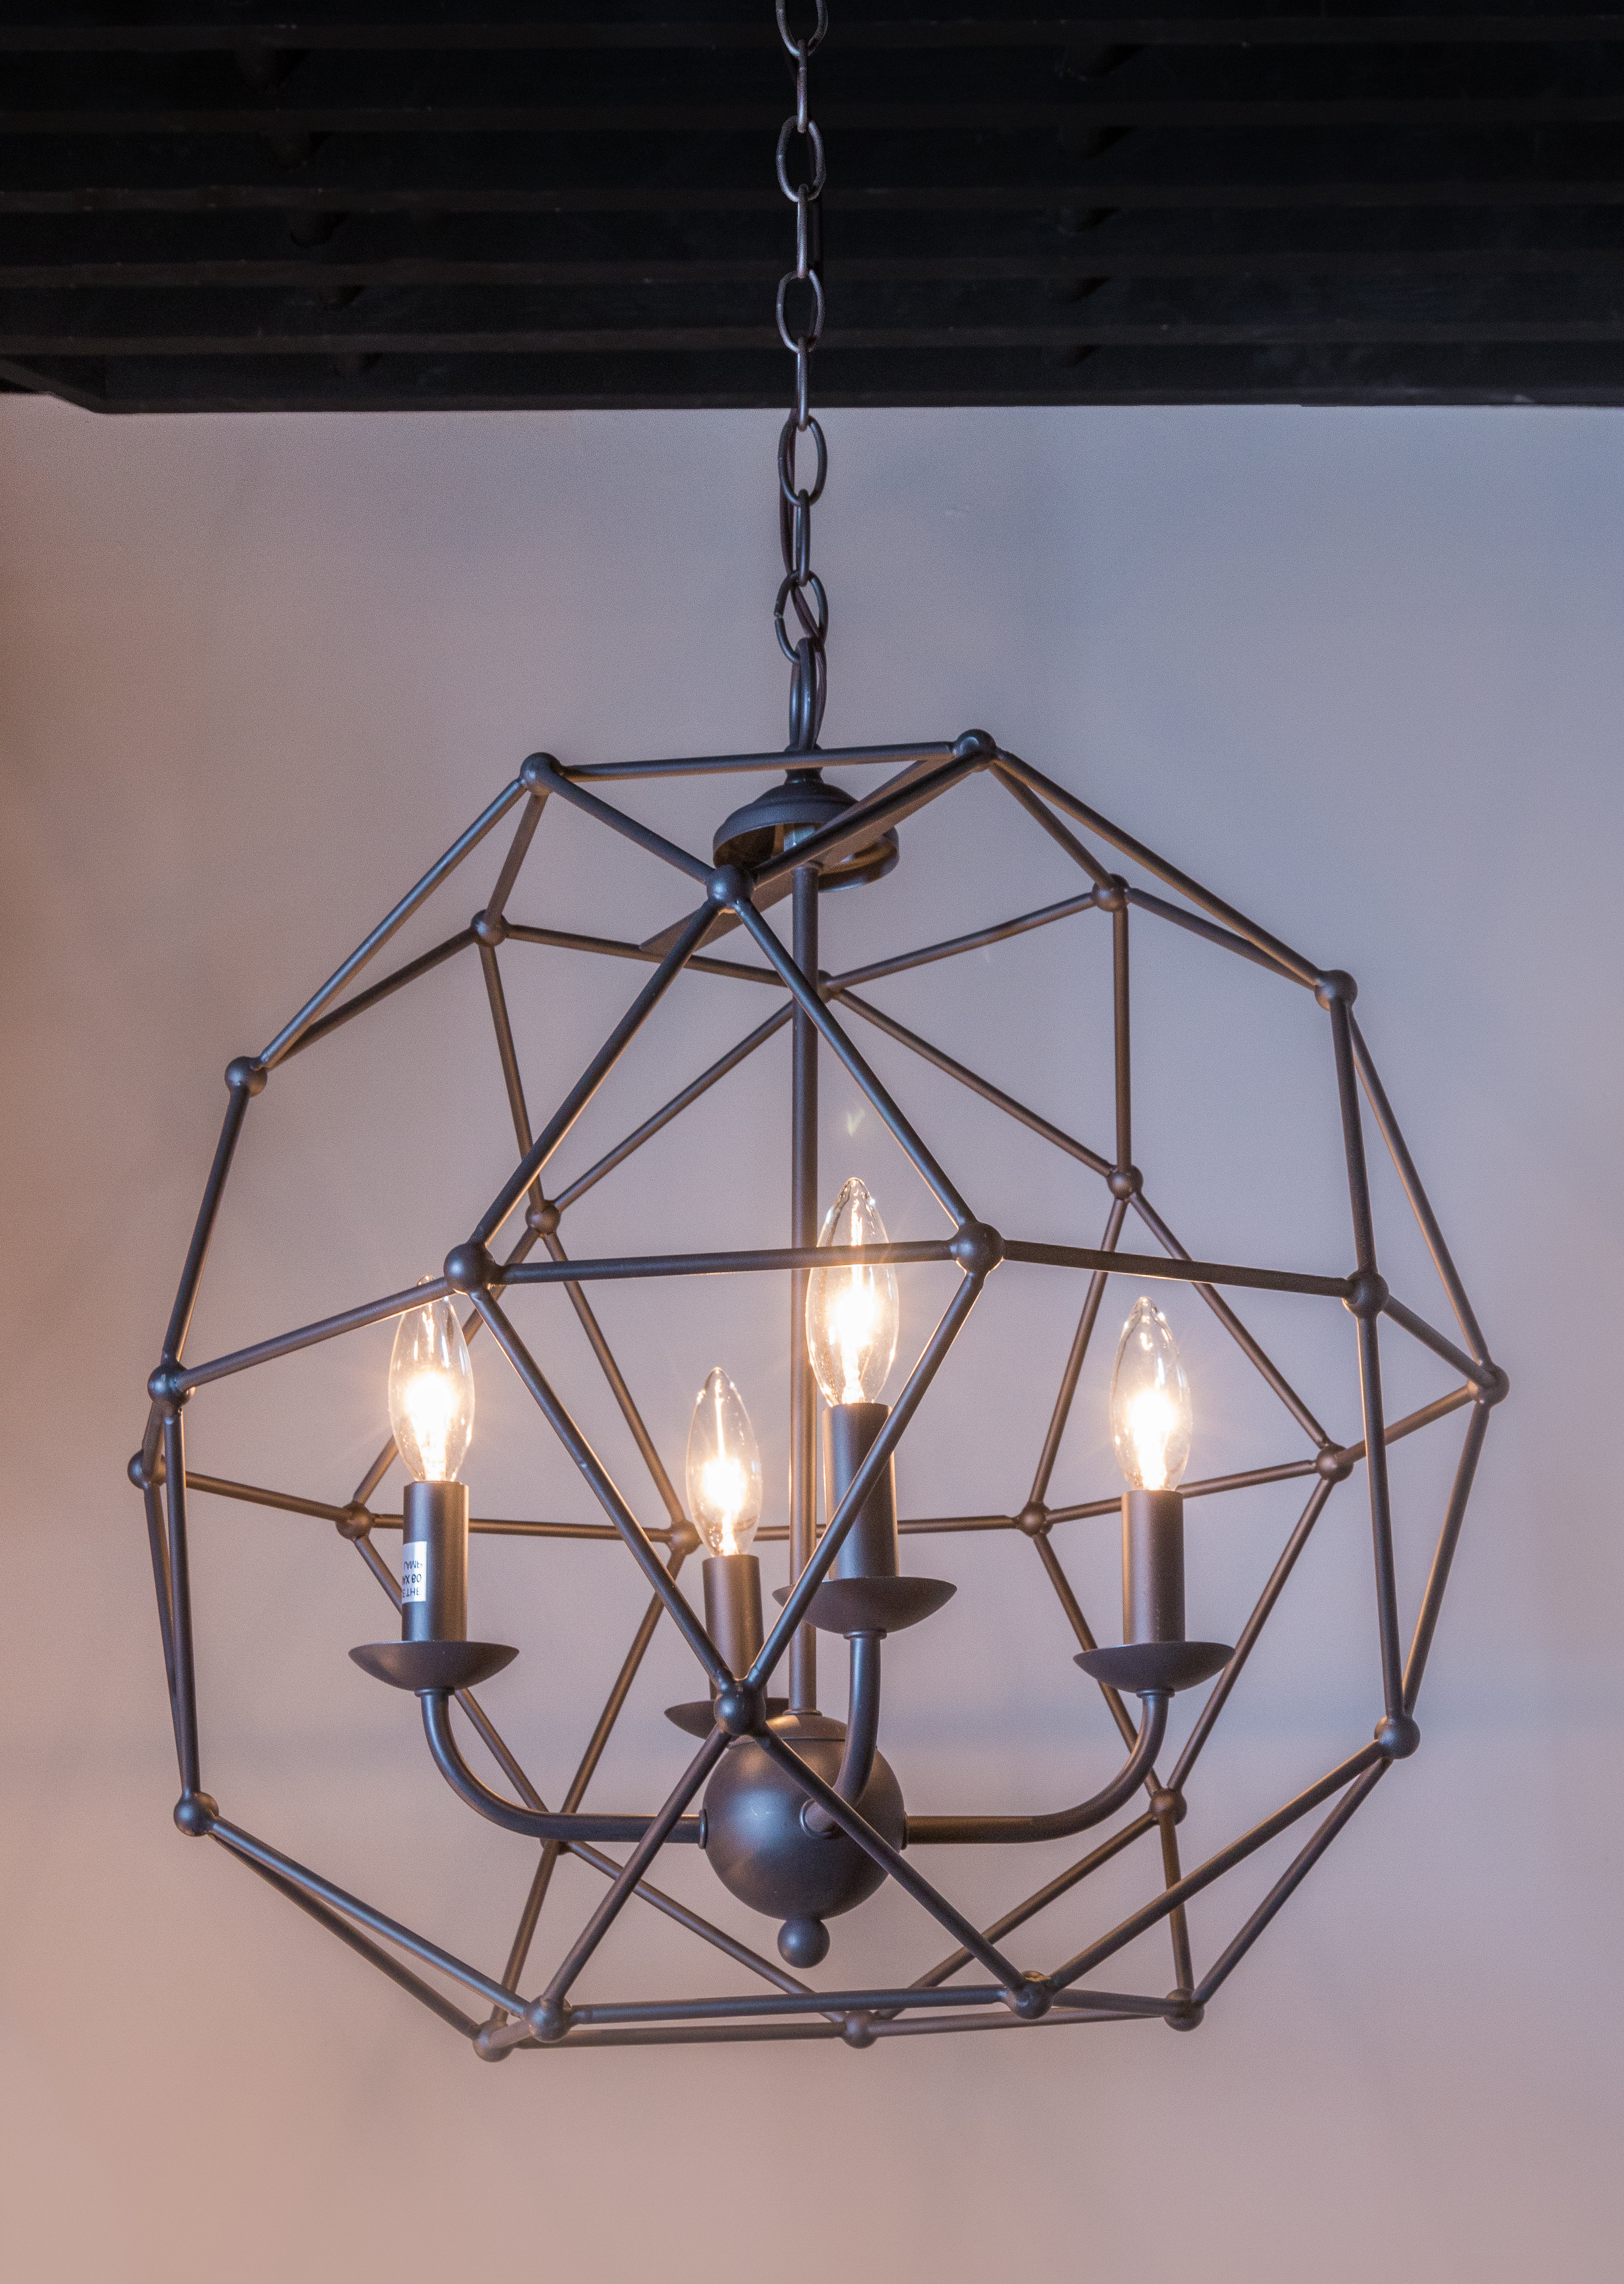 Widely Used Cavanagh 4 Light Geometric Chandeliers Inside Mercury Row Cavanagh 4 Light Geometric Chandelier (View 4 of 20)